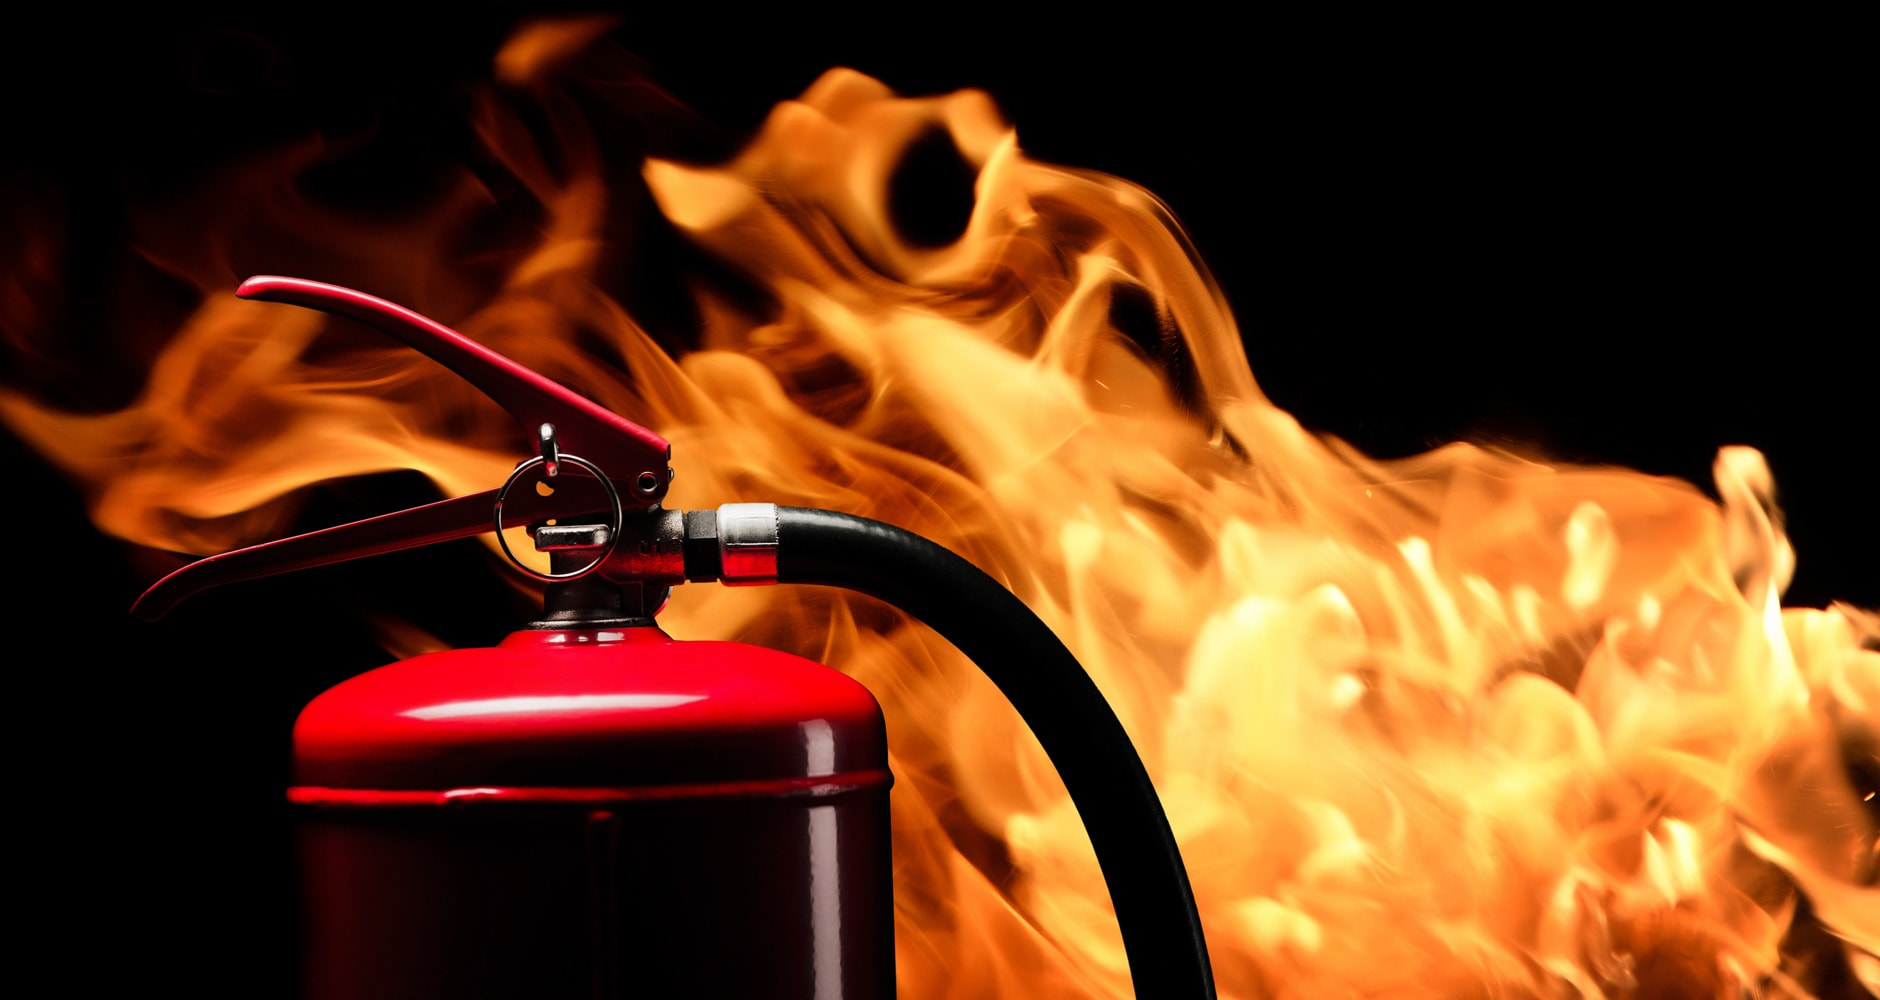 Do You Know What To Do If A Fire Breaks Out?image preview